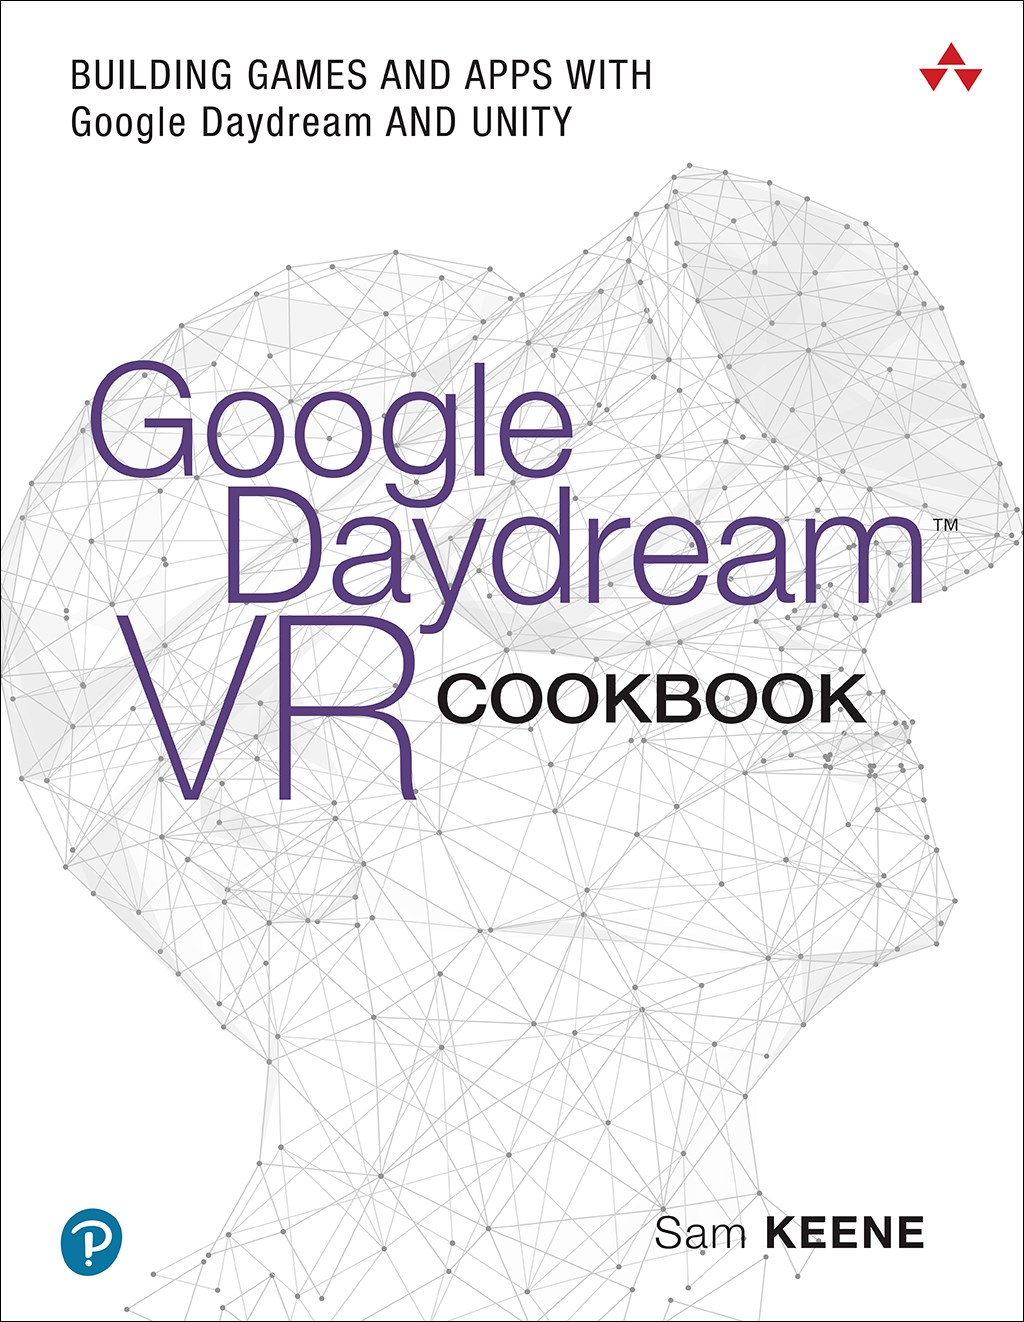 Get to Know the Google Daydream VR Controller